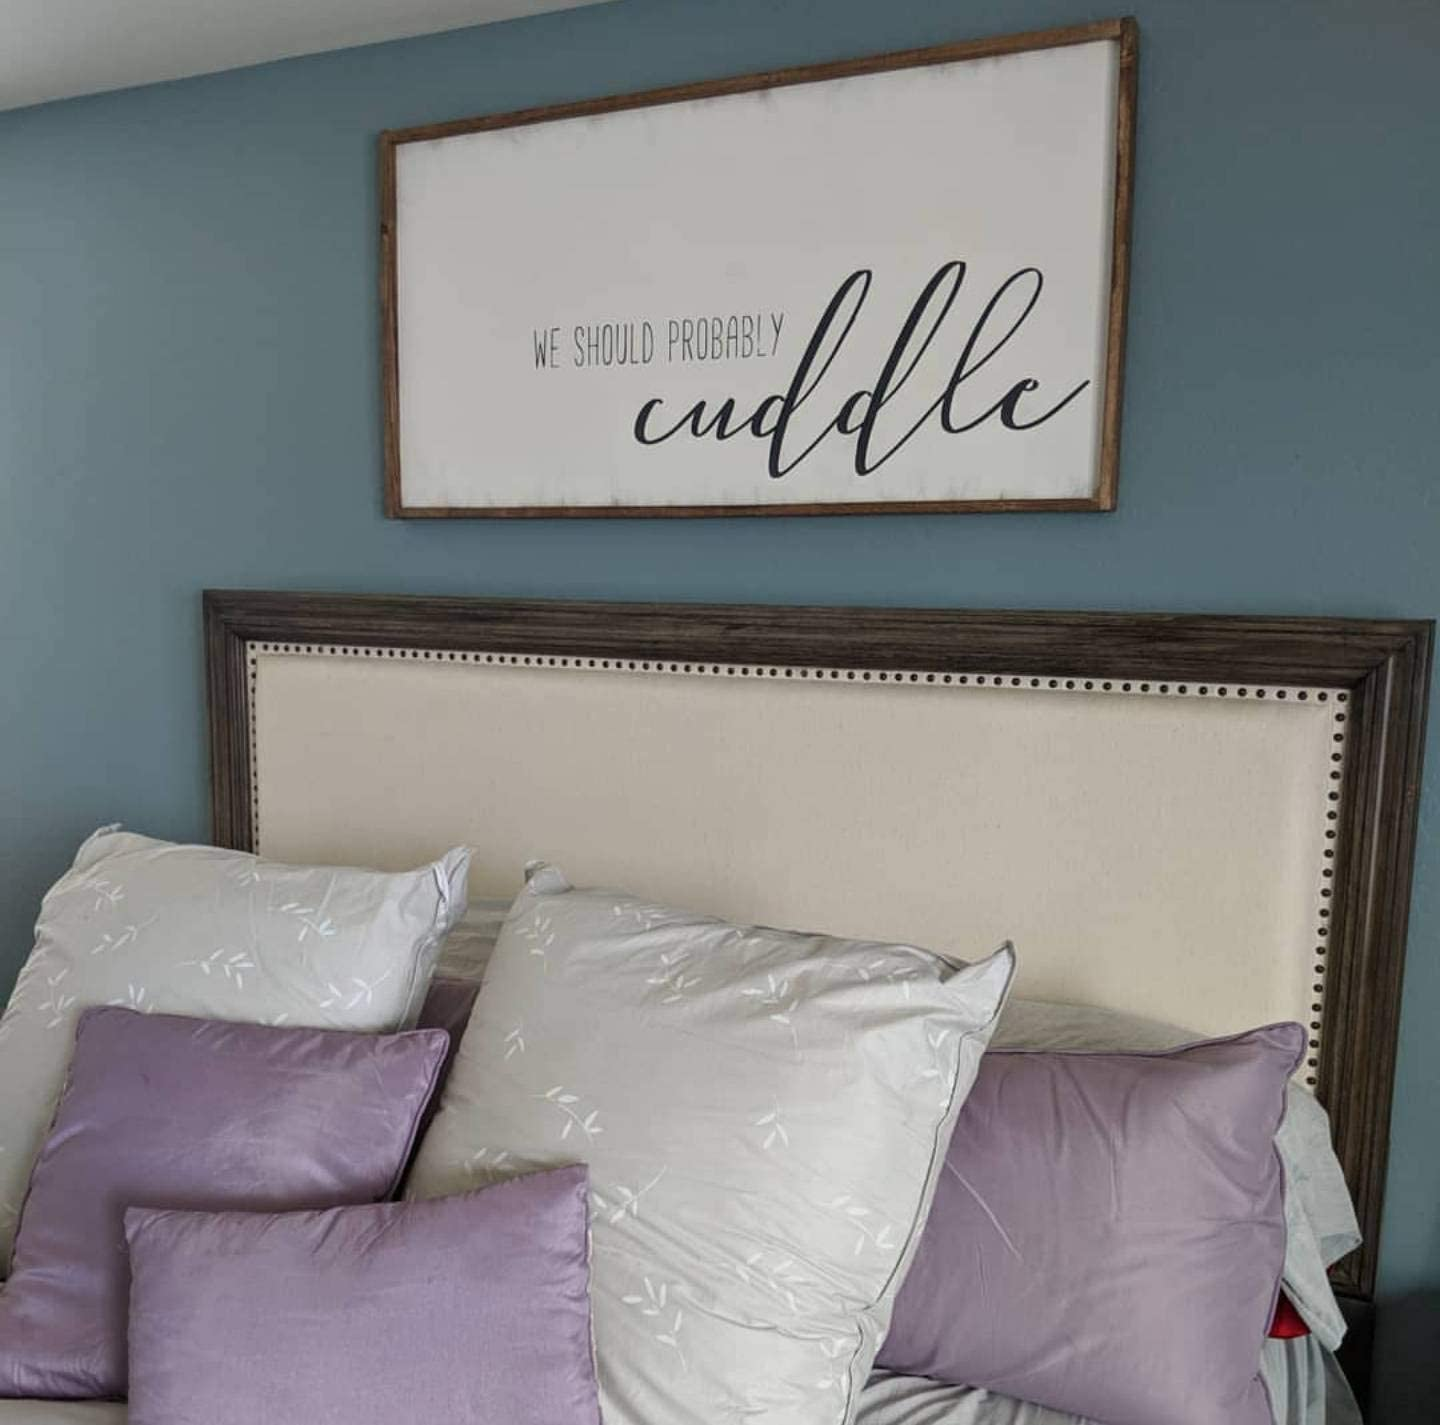 Amazon Com Celycasy We Should Probably Cuddle Sign Bedroom Sign Over The Bed Sign Large Bedroom Sign Wood Sign Master Bedroom Sign Farmhouse Bedroom Deco Home Kitchen